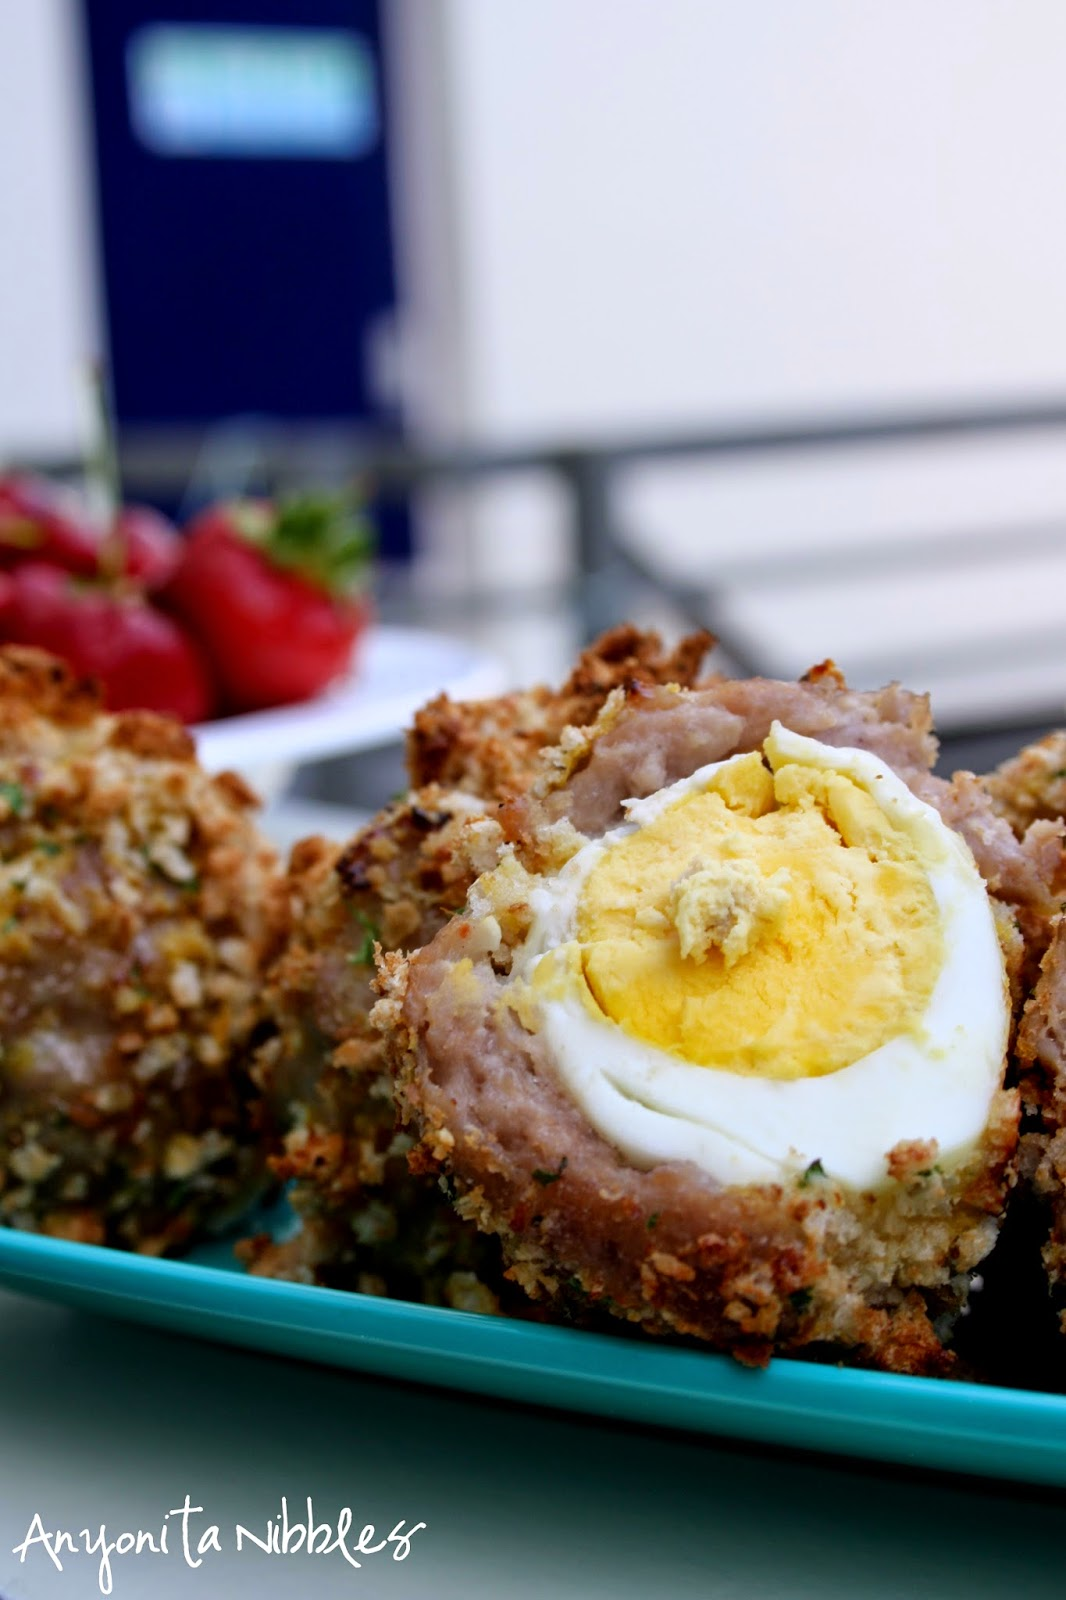 No British picnic is complete without a Scotch egg. This version is gluten free!